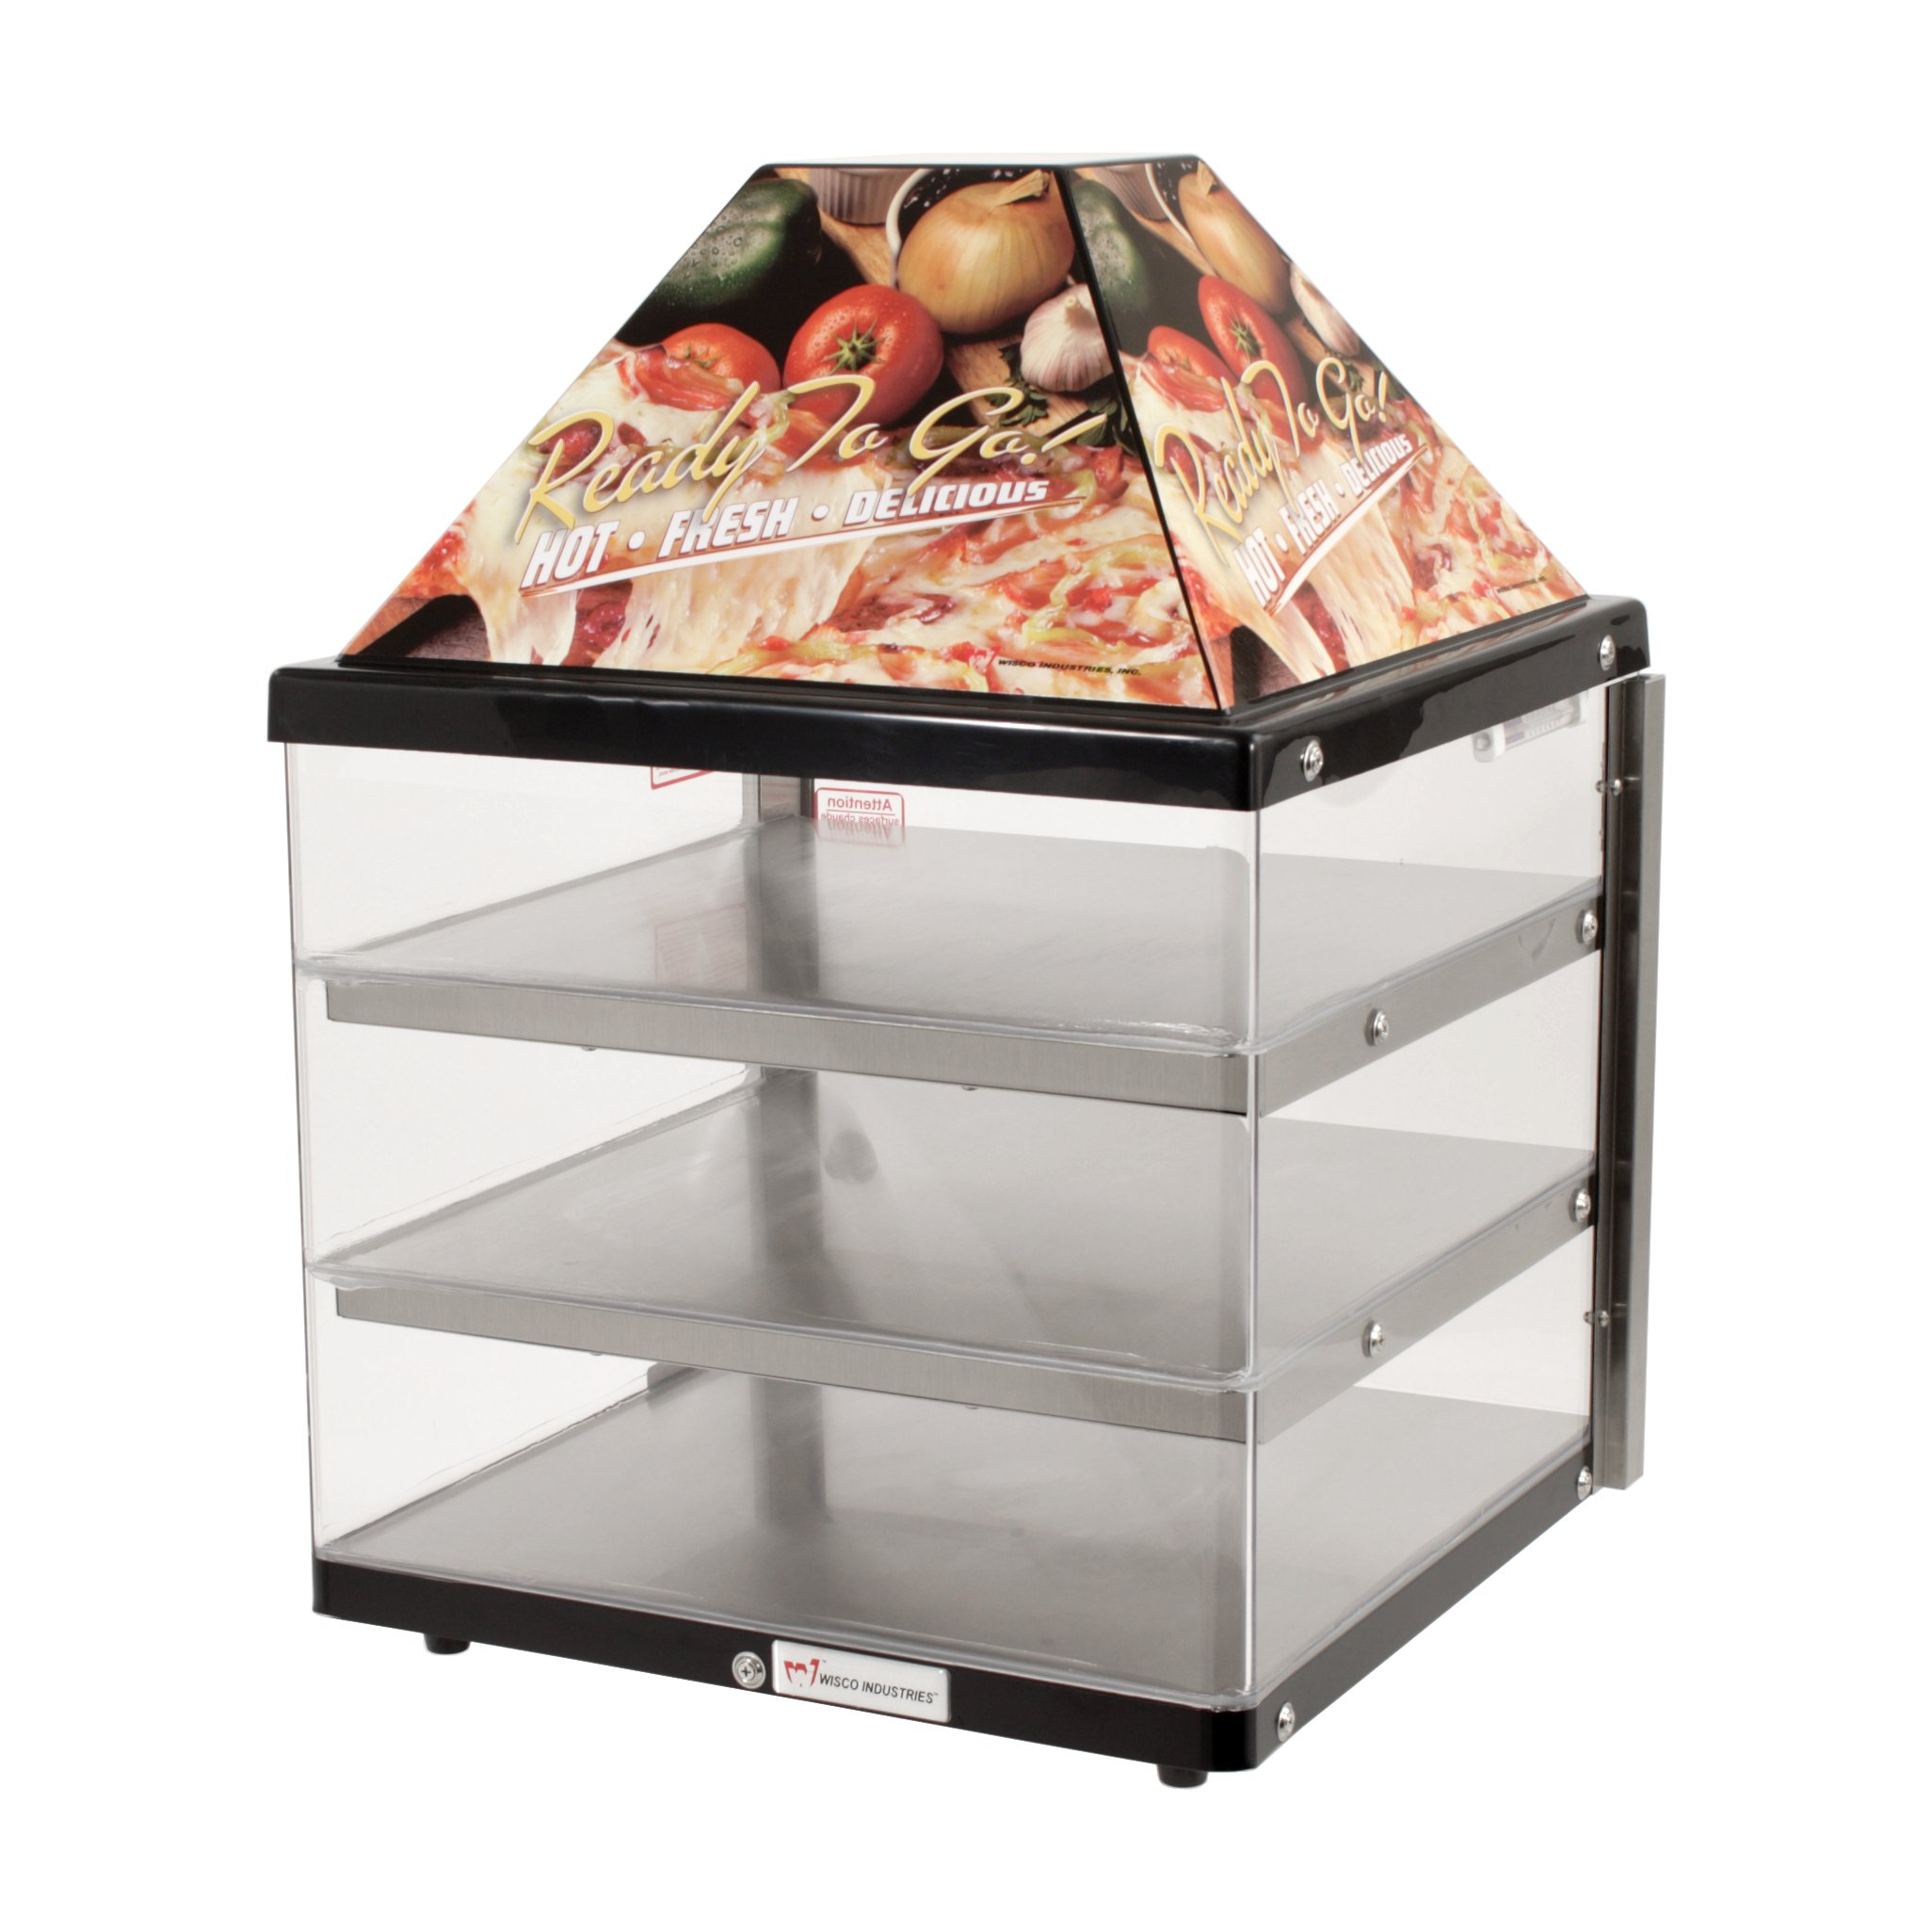 Wisco, Model 680-3-BLK, Food Warming and Merchandising Cabinet, 3 Shelf, Black